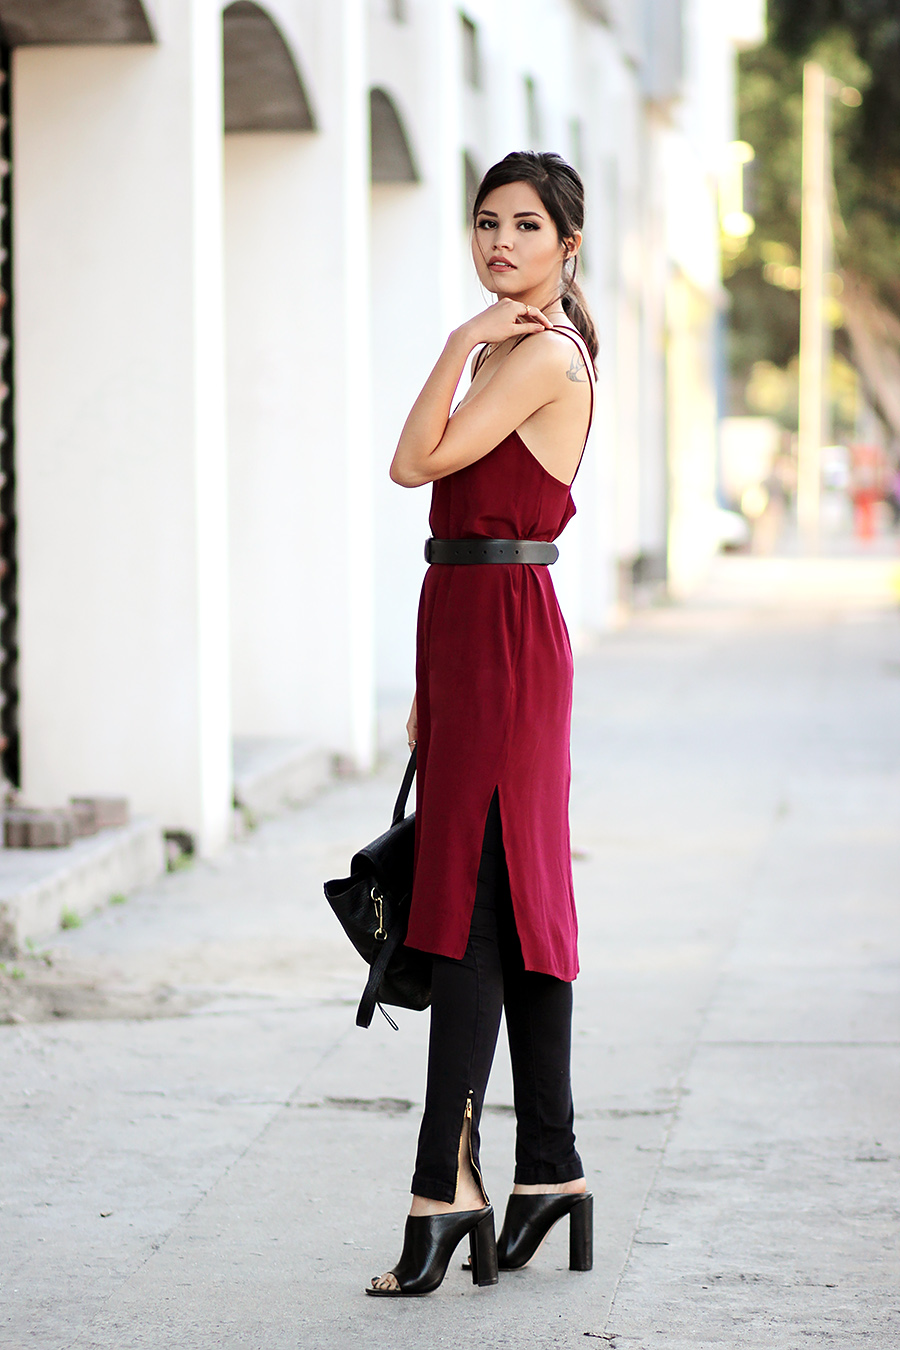 slip-dress-dress-pants-trend-motel-rocks-jeans-phillip-lim-pashli-zara-mules-blogger-mexicana